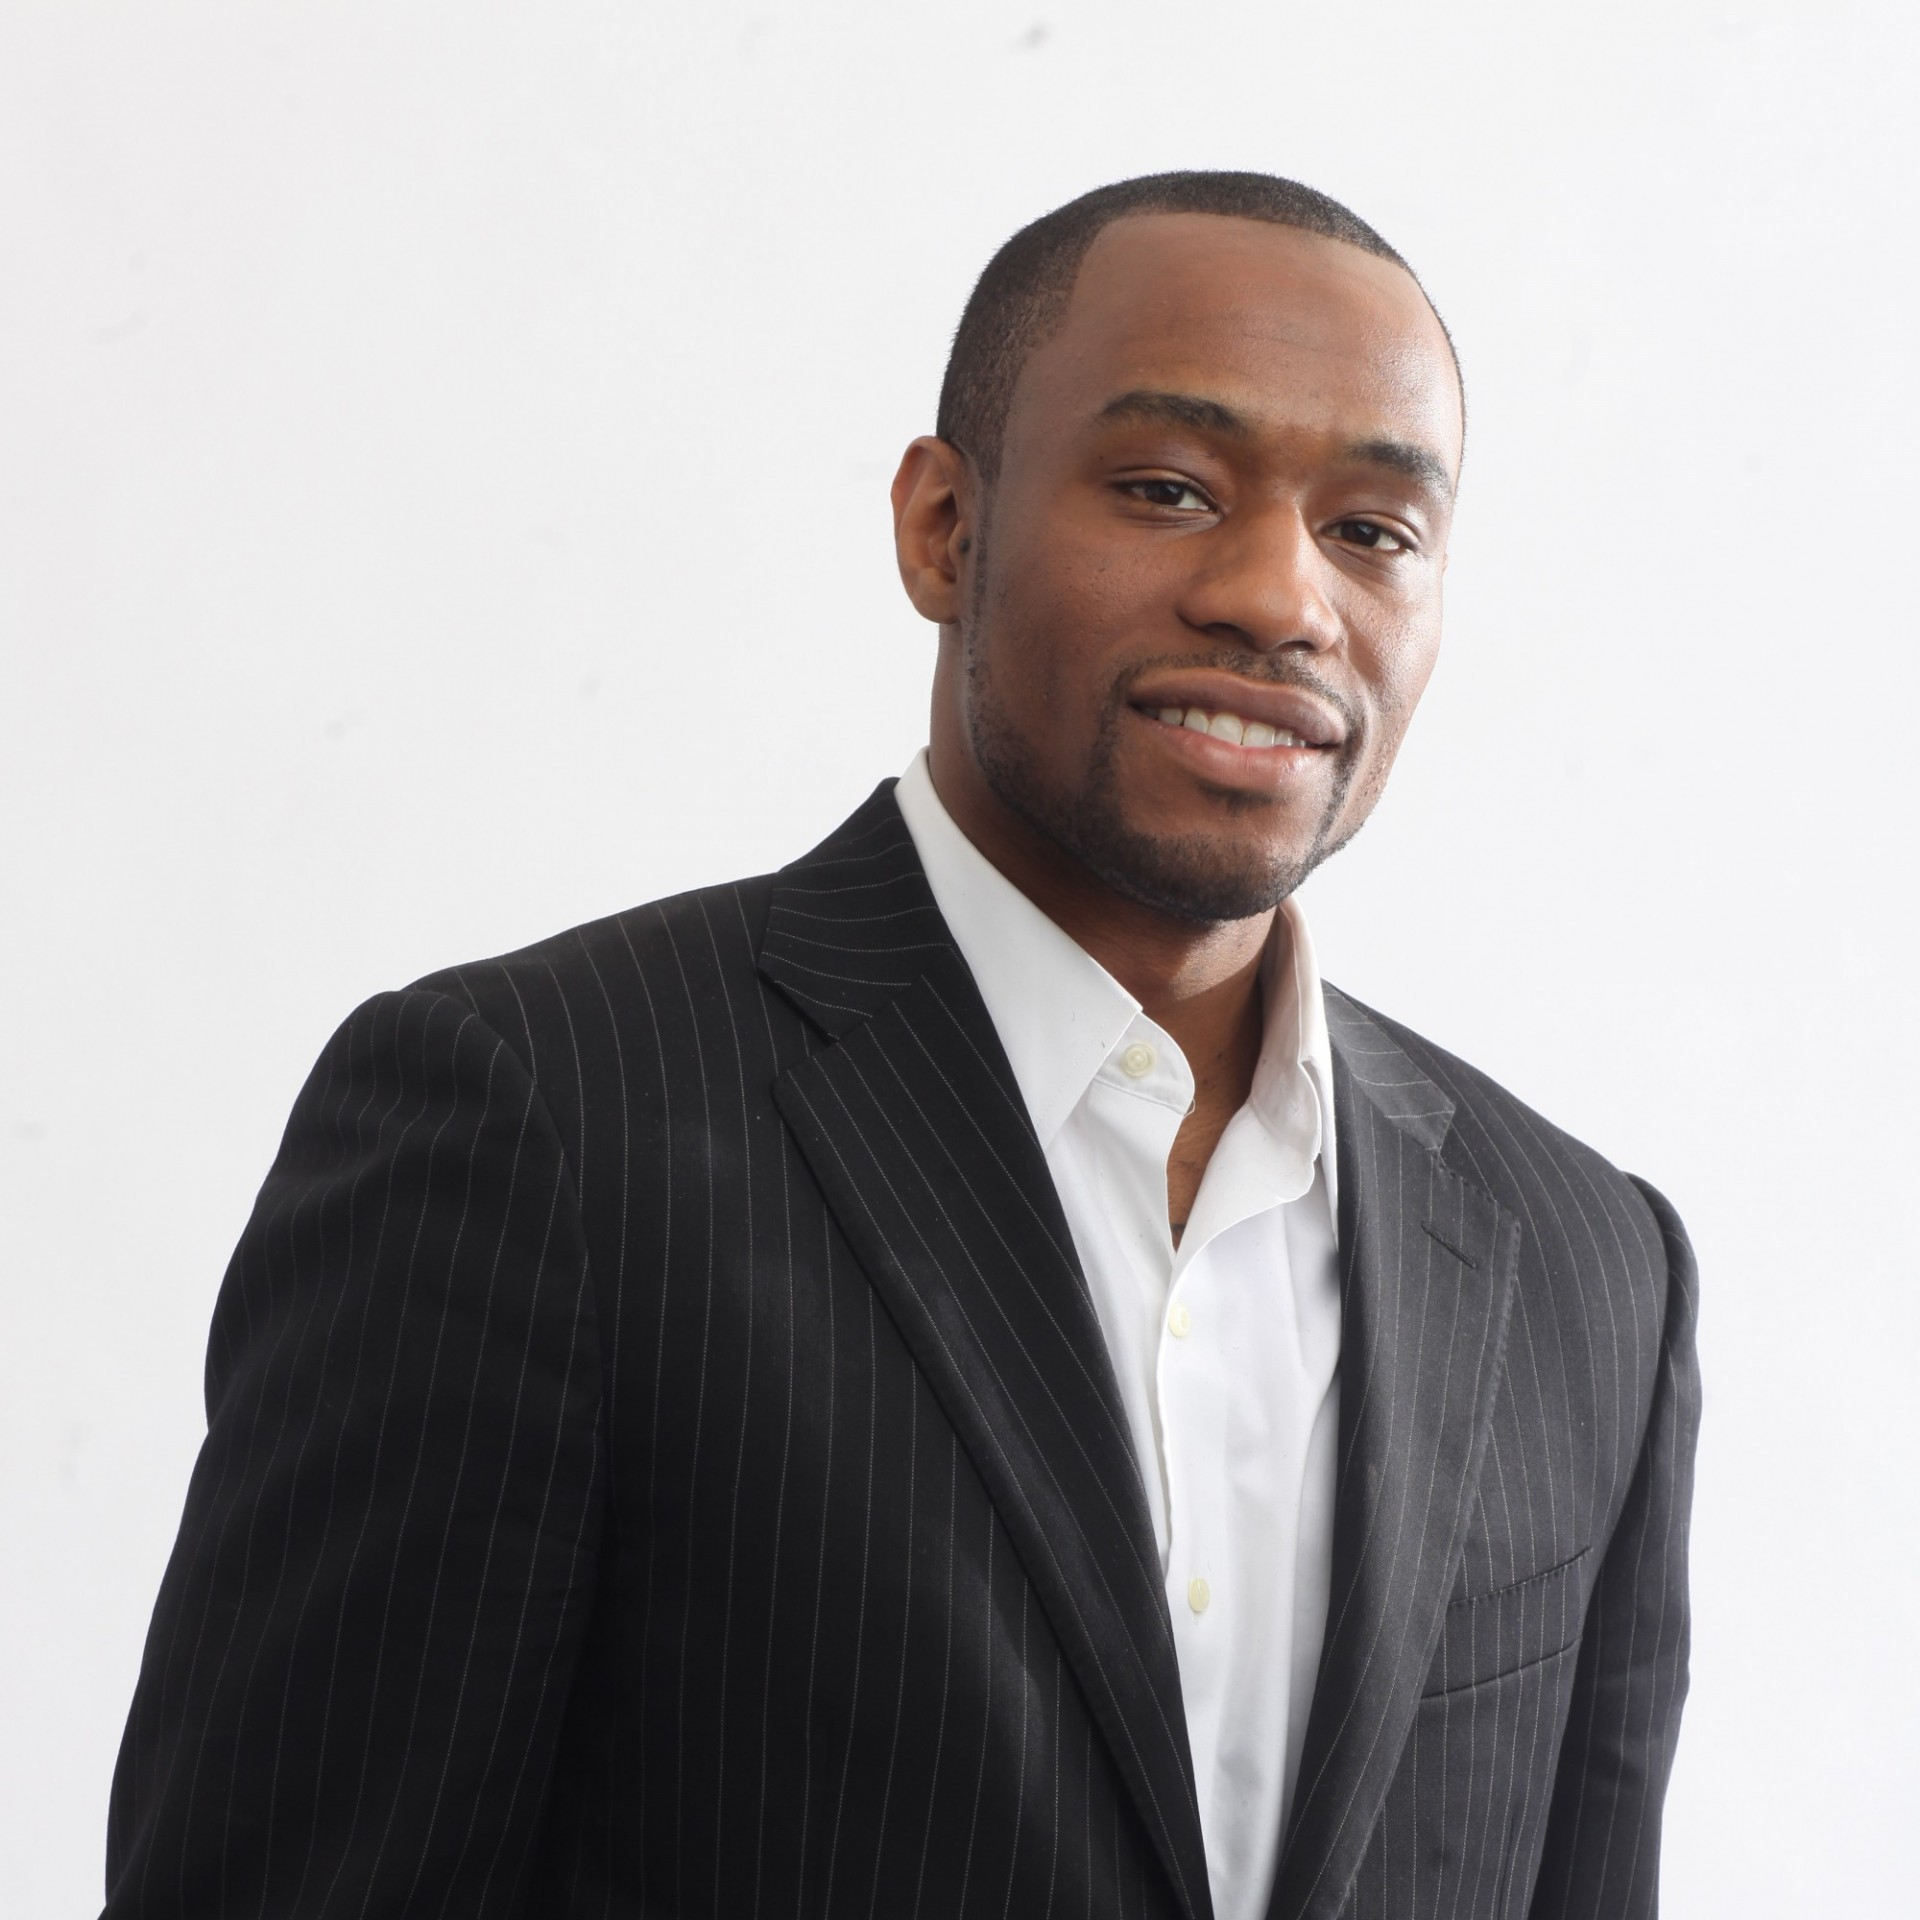 photo of Marc Lamont Hill